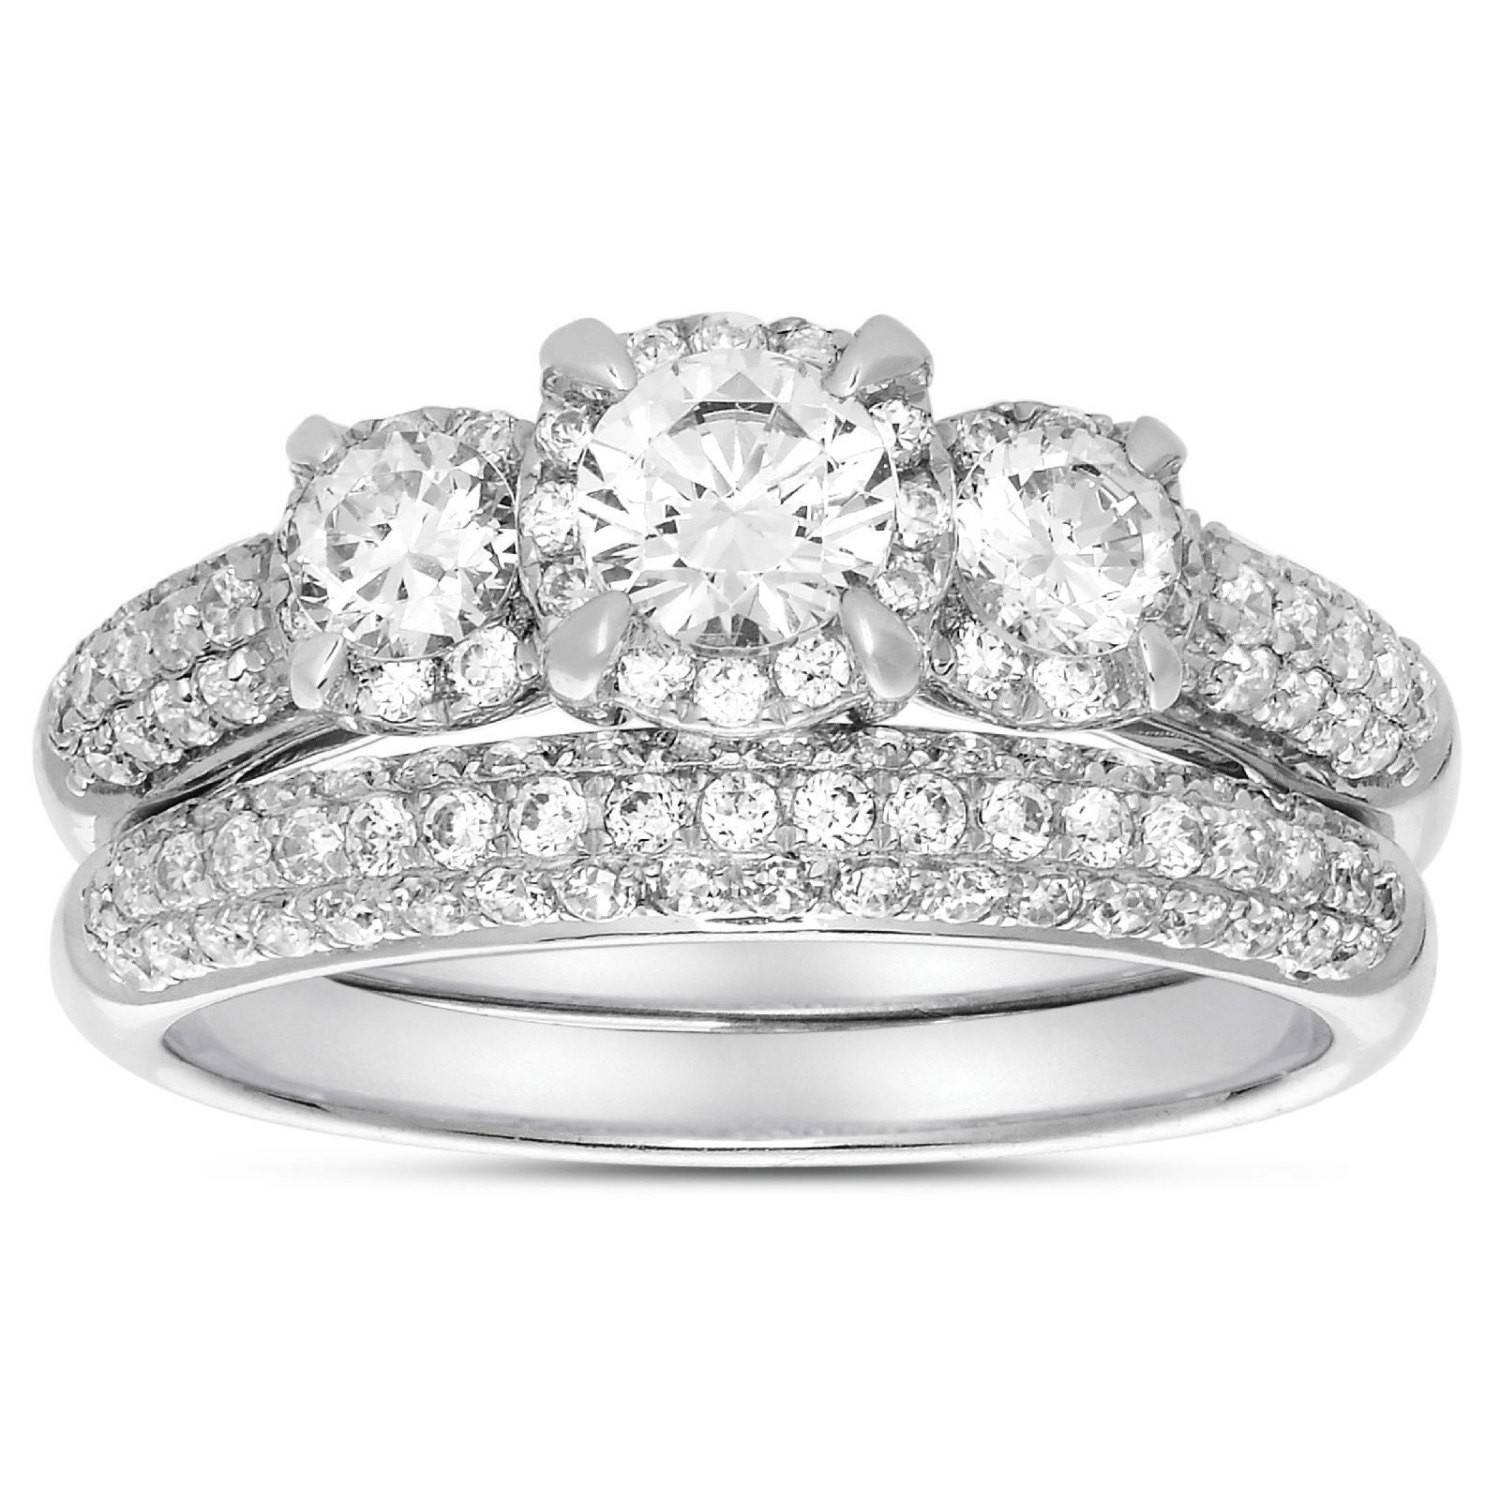 2 Carat Three Stone Trilogy Round Diamond Wedding Ring Set In Regarding Diamond Wedding Rings For Women (View 2 of 15)